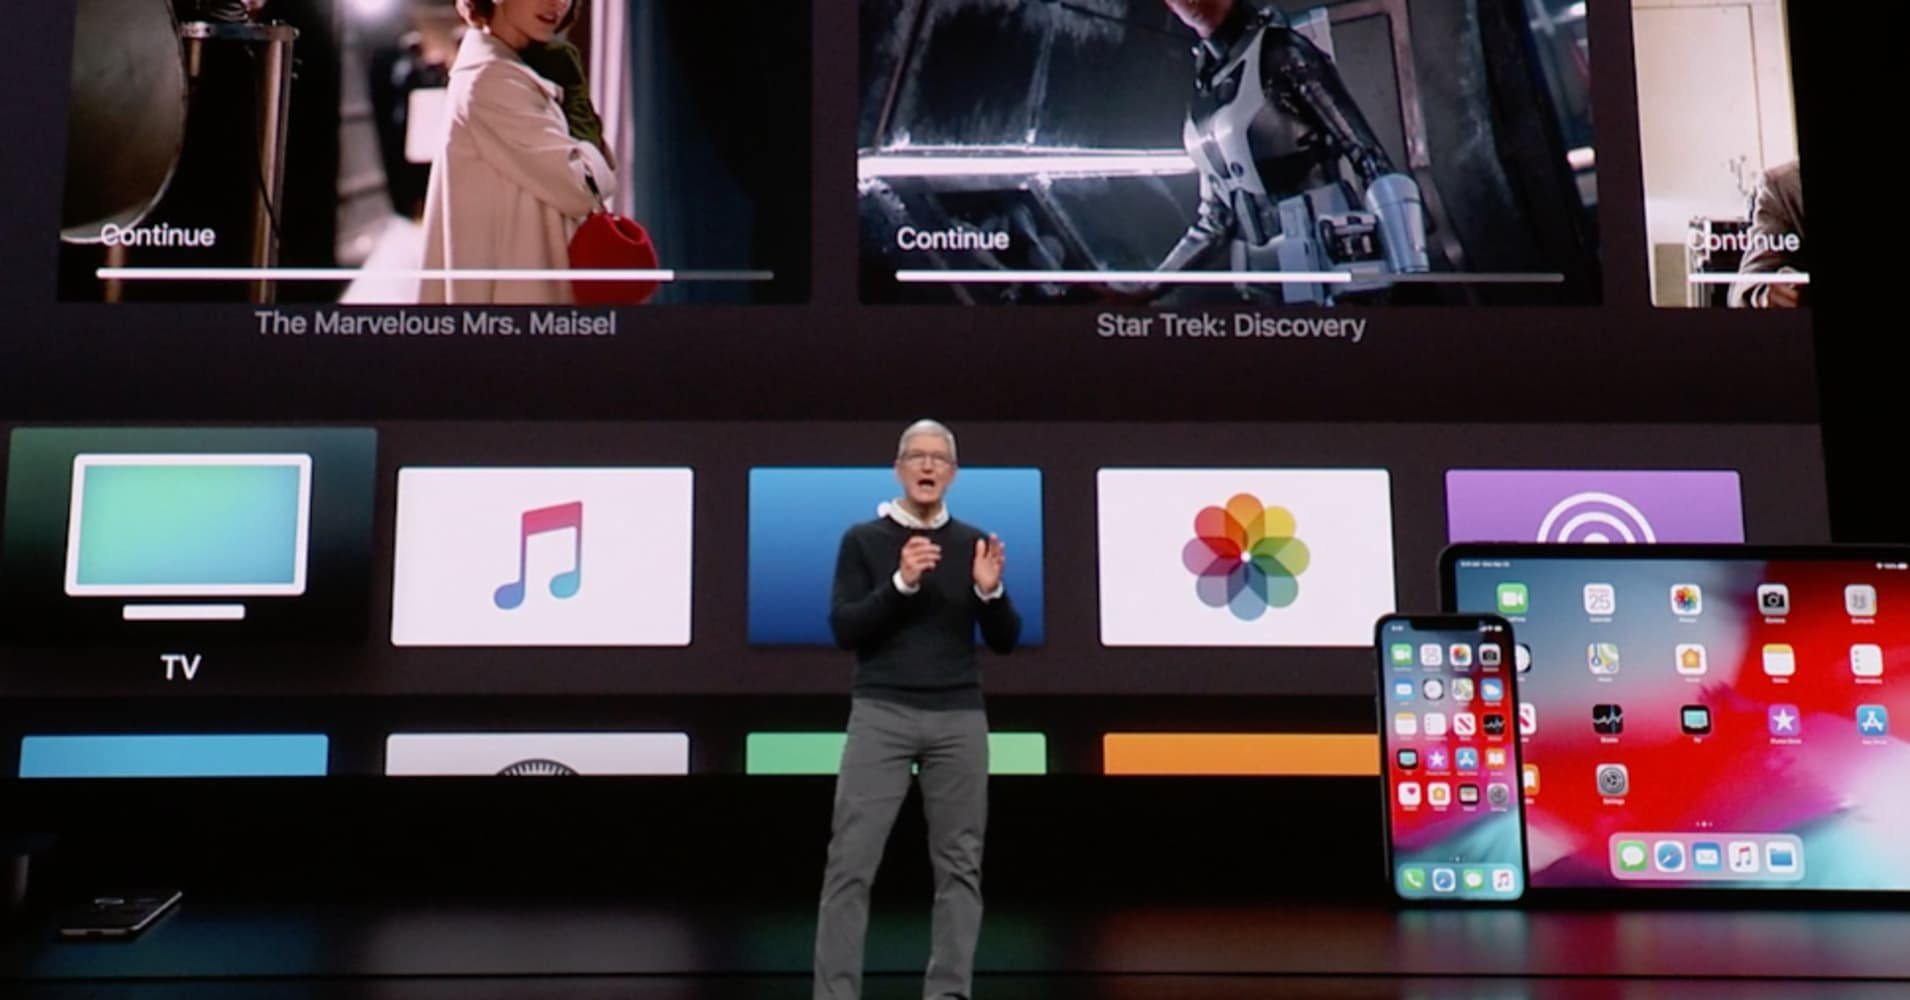 cnbc.com - Todd Haselton - Apple just announced its streaming TV service called Apple TV+